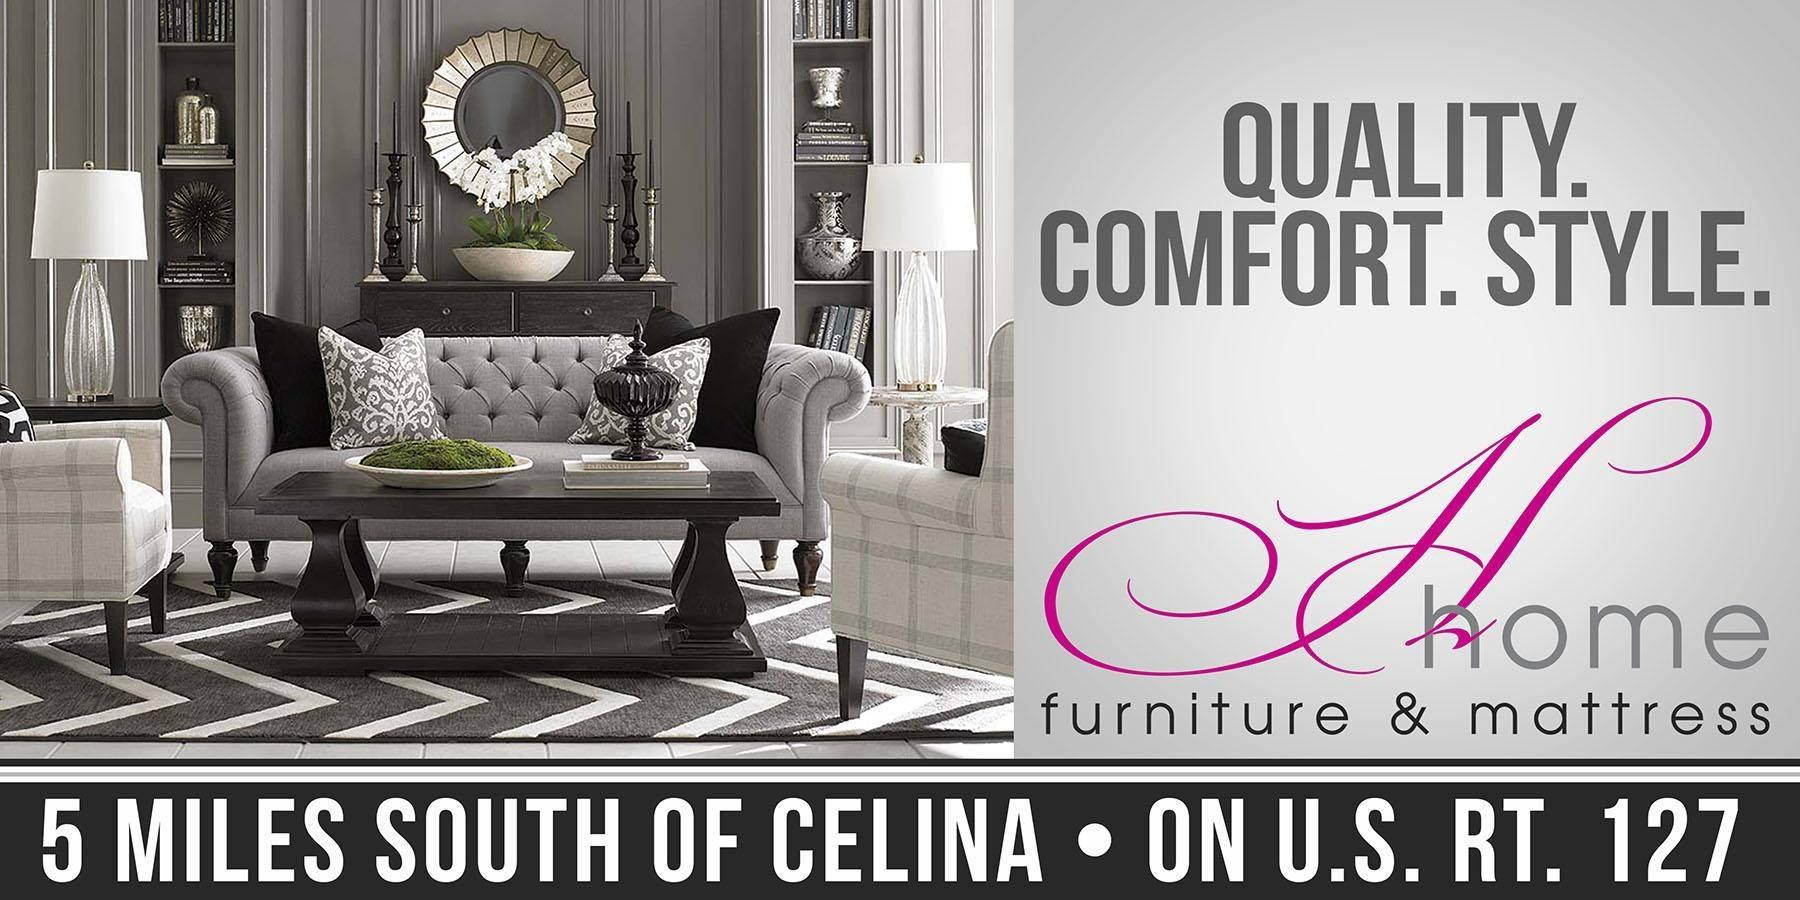 Home furniture mattress coupons near me in celina 8coupons for Home furniture near me